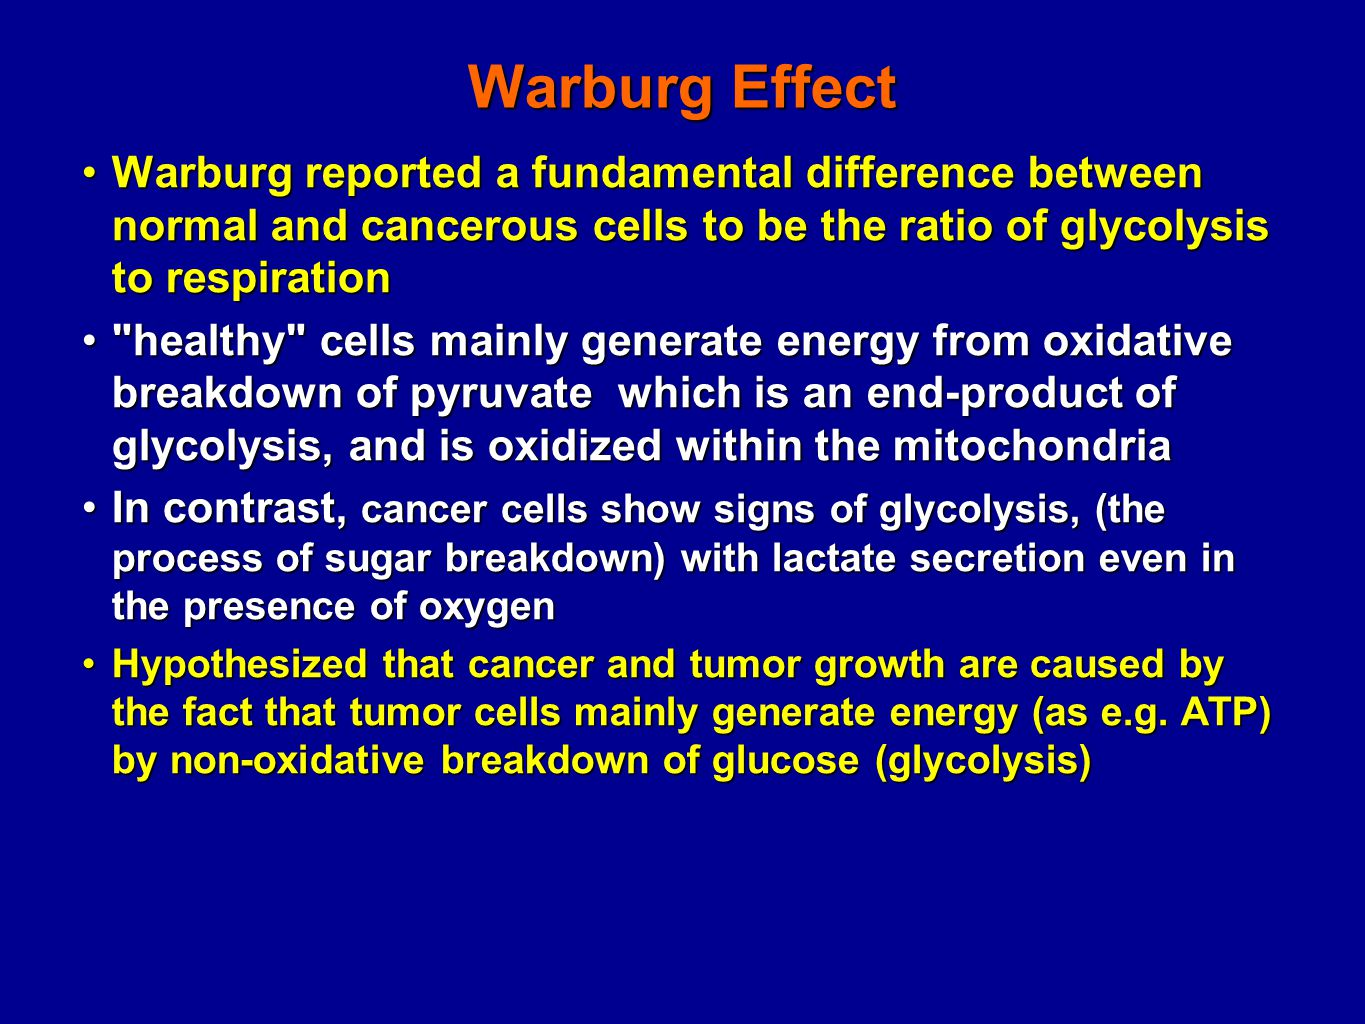 Warburg Effect Warburg reported a fundamental difference between normal and cancerous cells to be the ratio of glycolysis to respirationWarburg reported a fundamental difference between normal and cancerous cells to be the ratio of glycolysis to respiration healthy cells mainly generate energy from oxidative breakdown of pyruvate which is an end-product of glycolysis, and is oxidized within the mitochondria healthy cells mainly generate energy from oxidative breakdown of pyruvate which is an end-product of glycolysis, and is oxidized within the mitochondria In contrast, cancer cells show signs of glycolysis, (the process of sugar breakdown) with lactate secretion even in the presence of oxygenIn contrast, cancer cells show signs of glycolysis, (the process of sugar breakdown) with lactate secretion even in the presence of oxygen Hypothesized that cancer and tumor growth are caused by the fact that tumor cells mainly generate energy (as e.g.